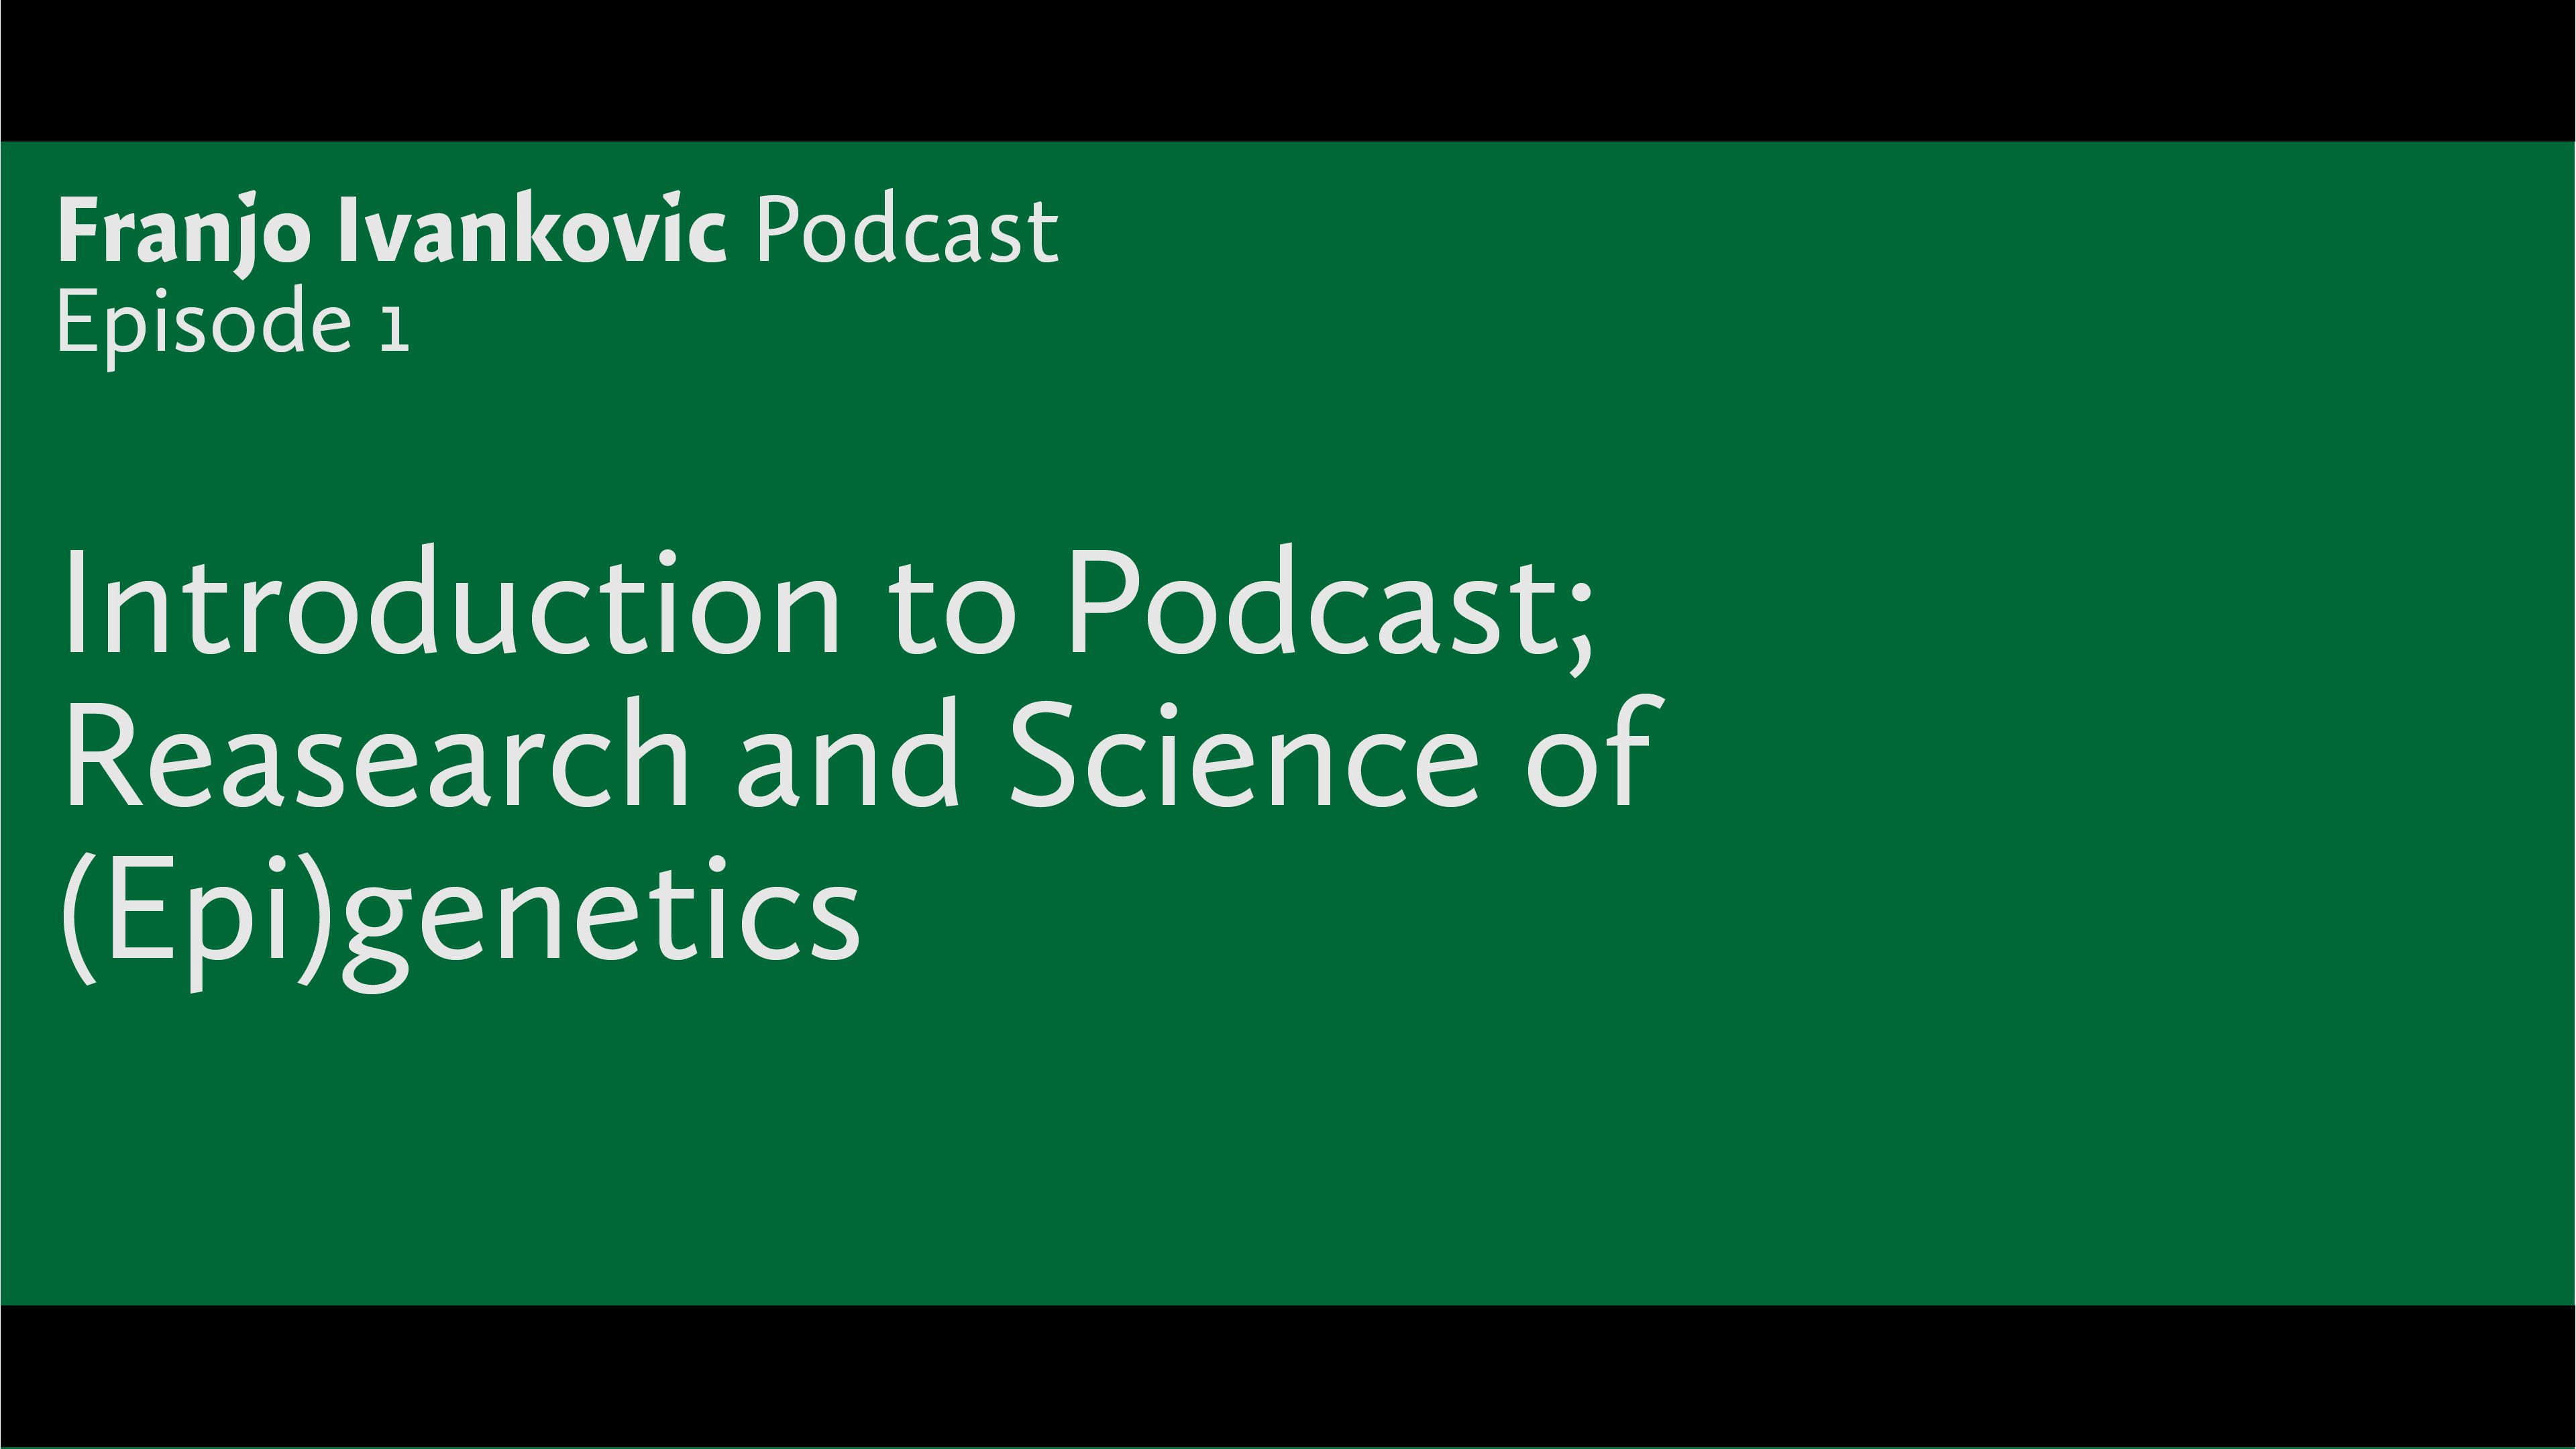 Podcast Episode 1: Introduction to Podcast